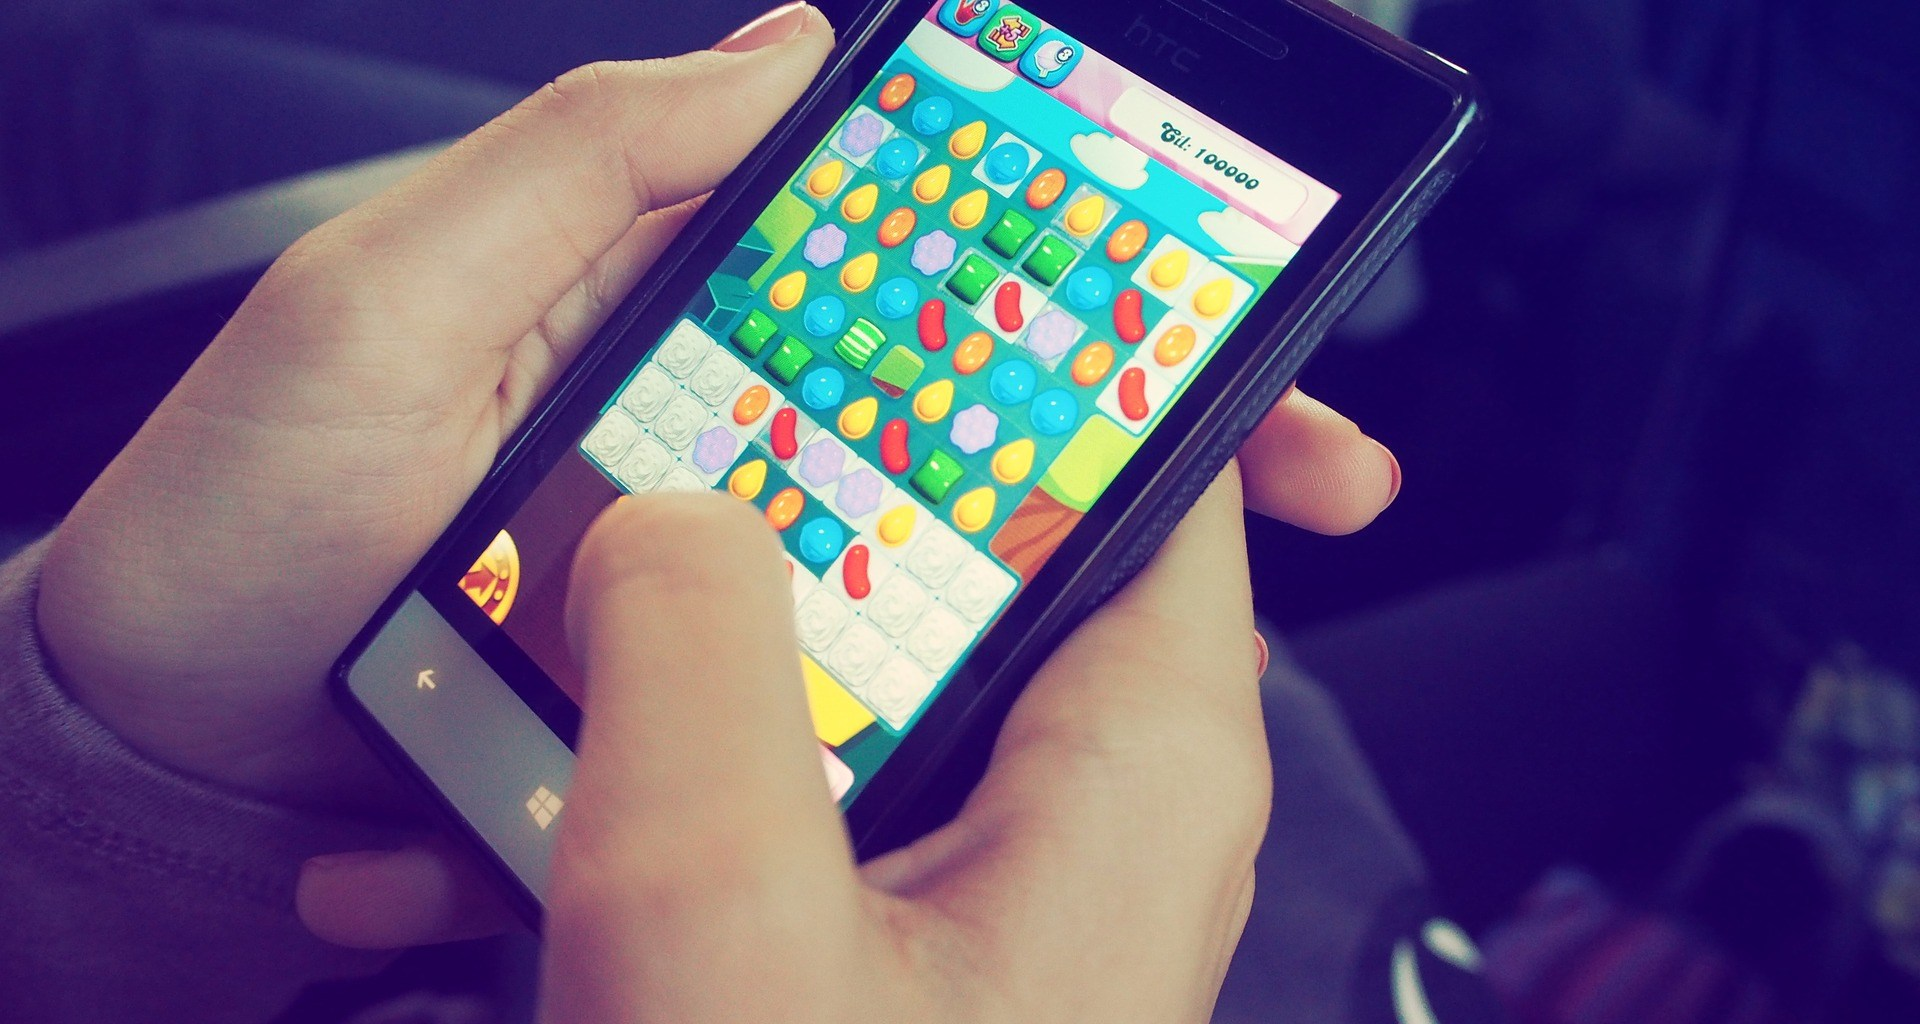 candy crush 1869655 1920 - Top 10 Android Games To Play In 2021 (Updated)